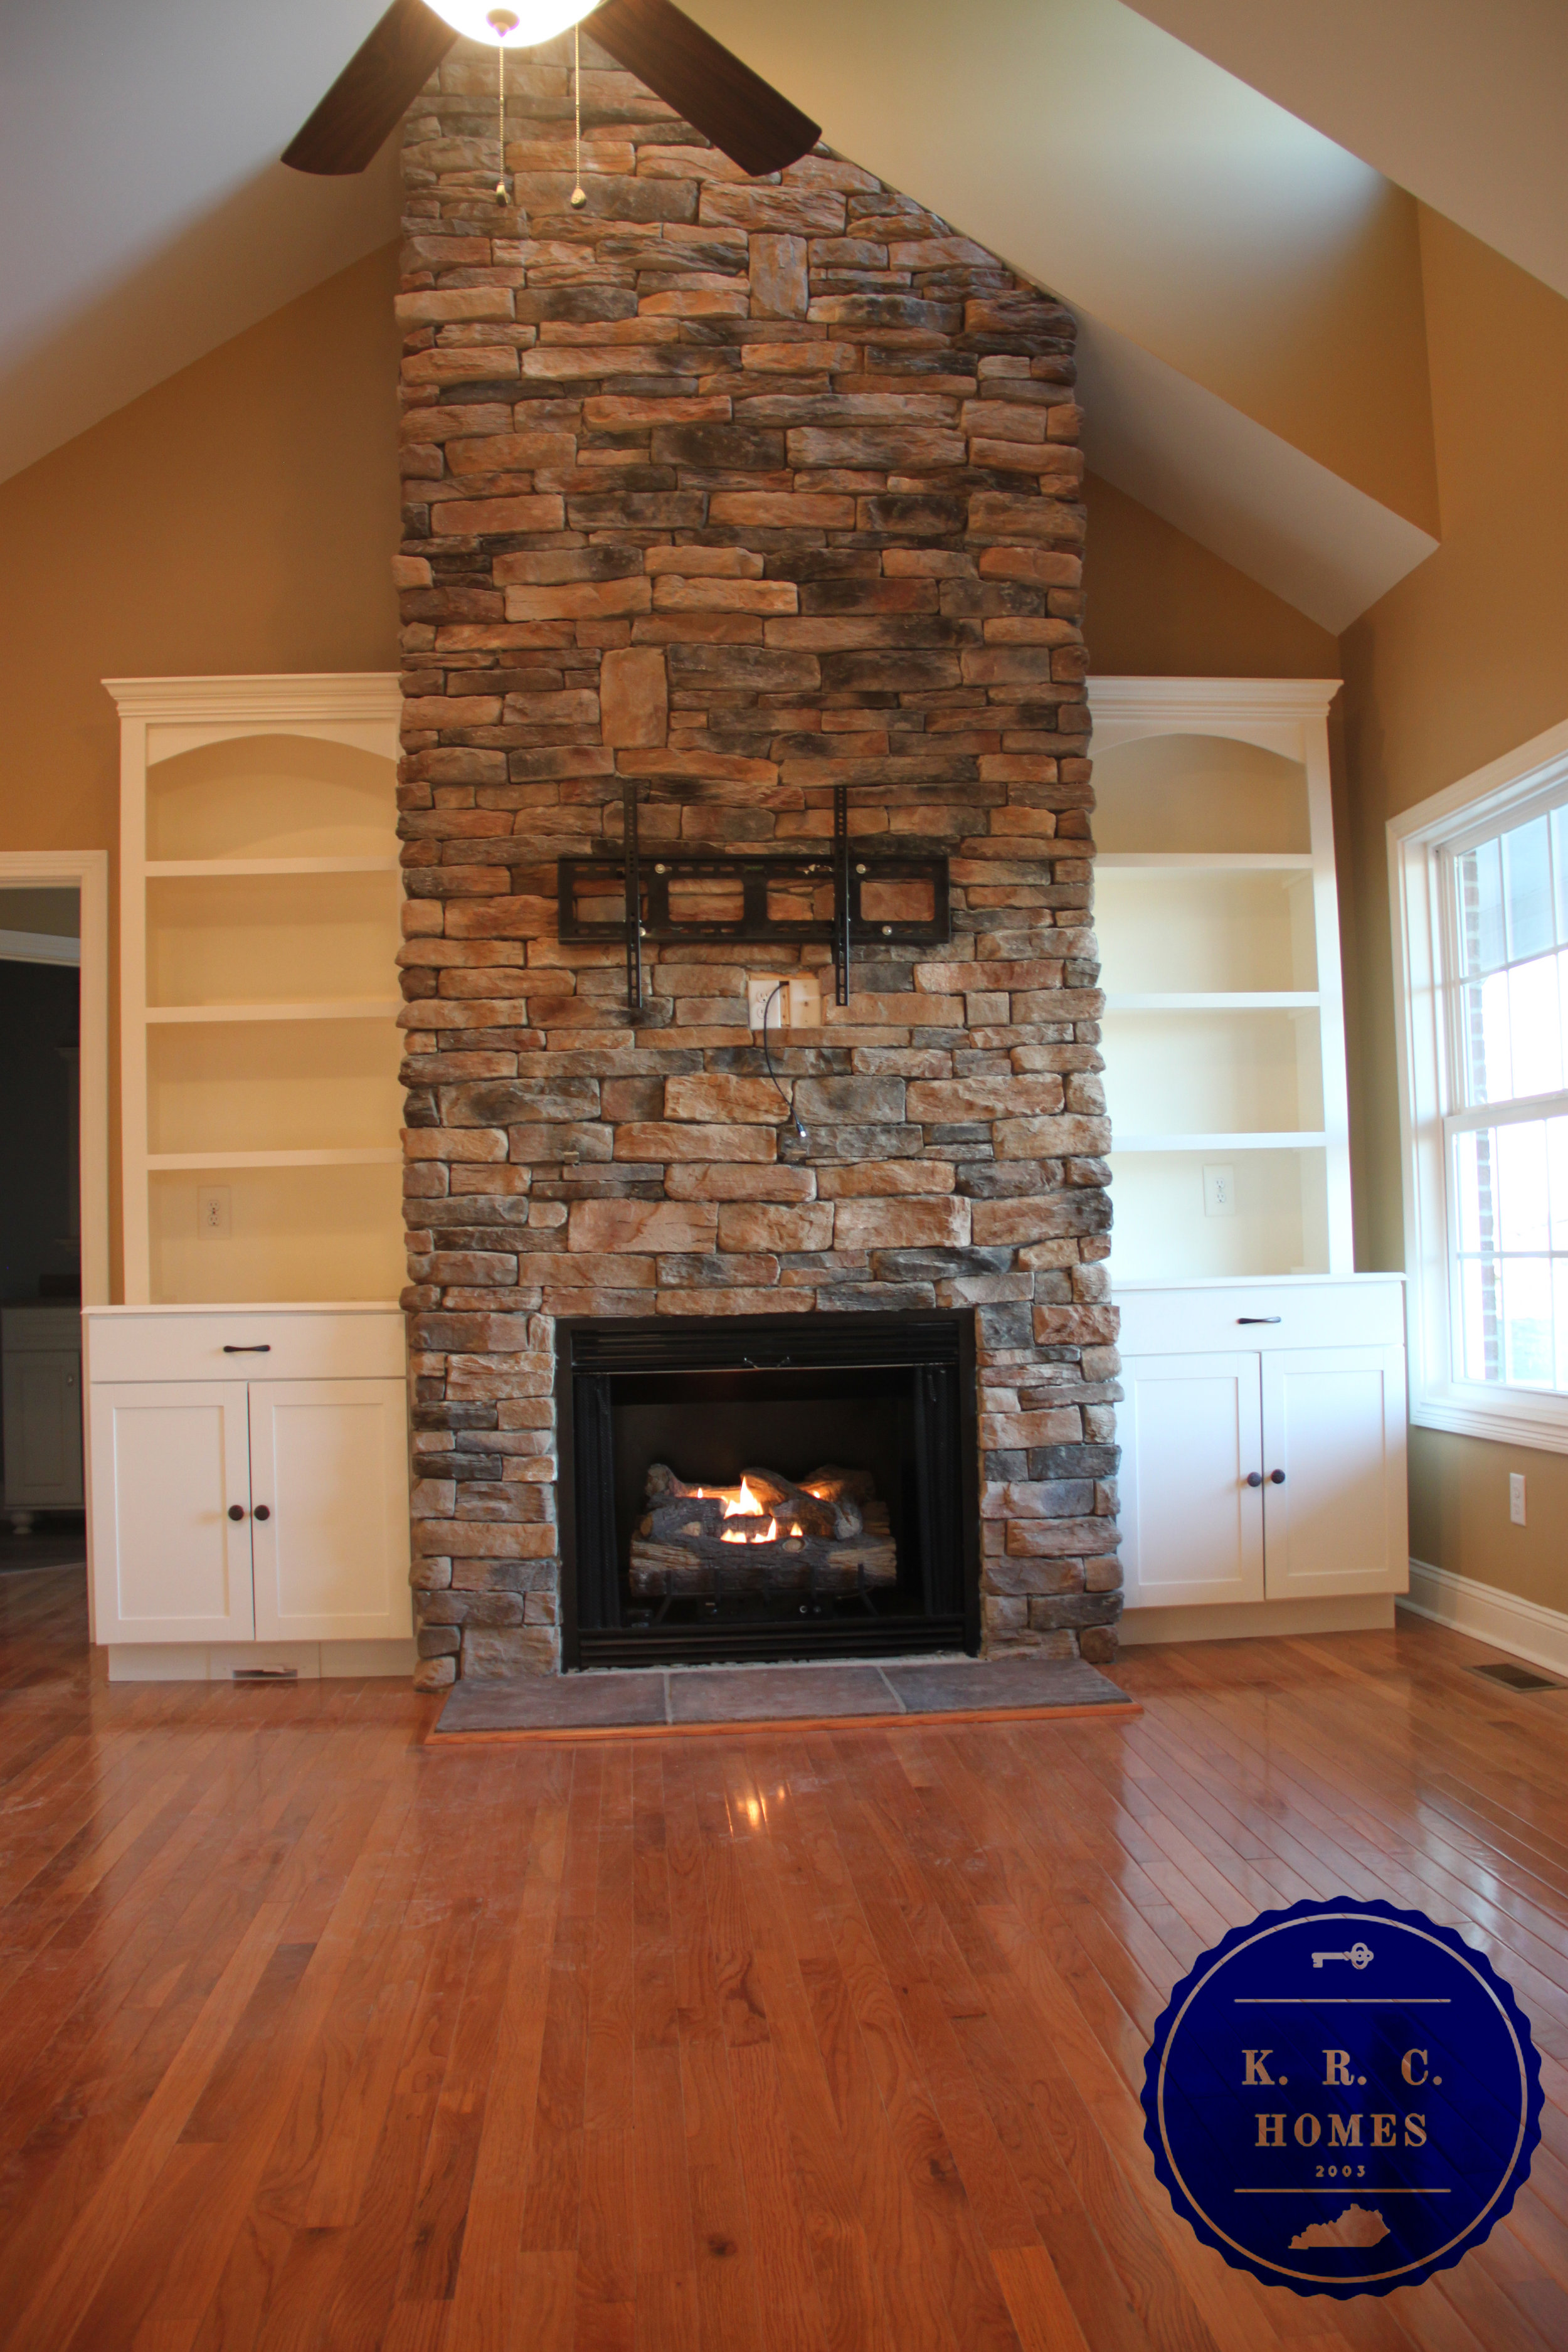 Stone fireplace with built-in bookshelves and vaulted ceilings in the family room